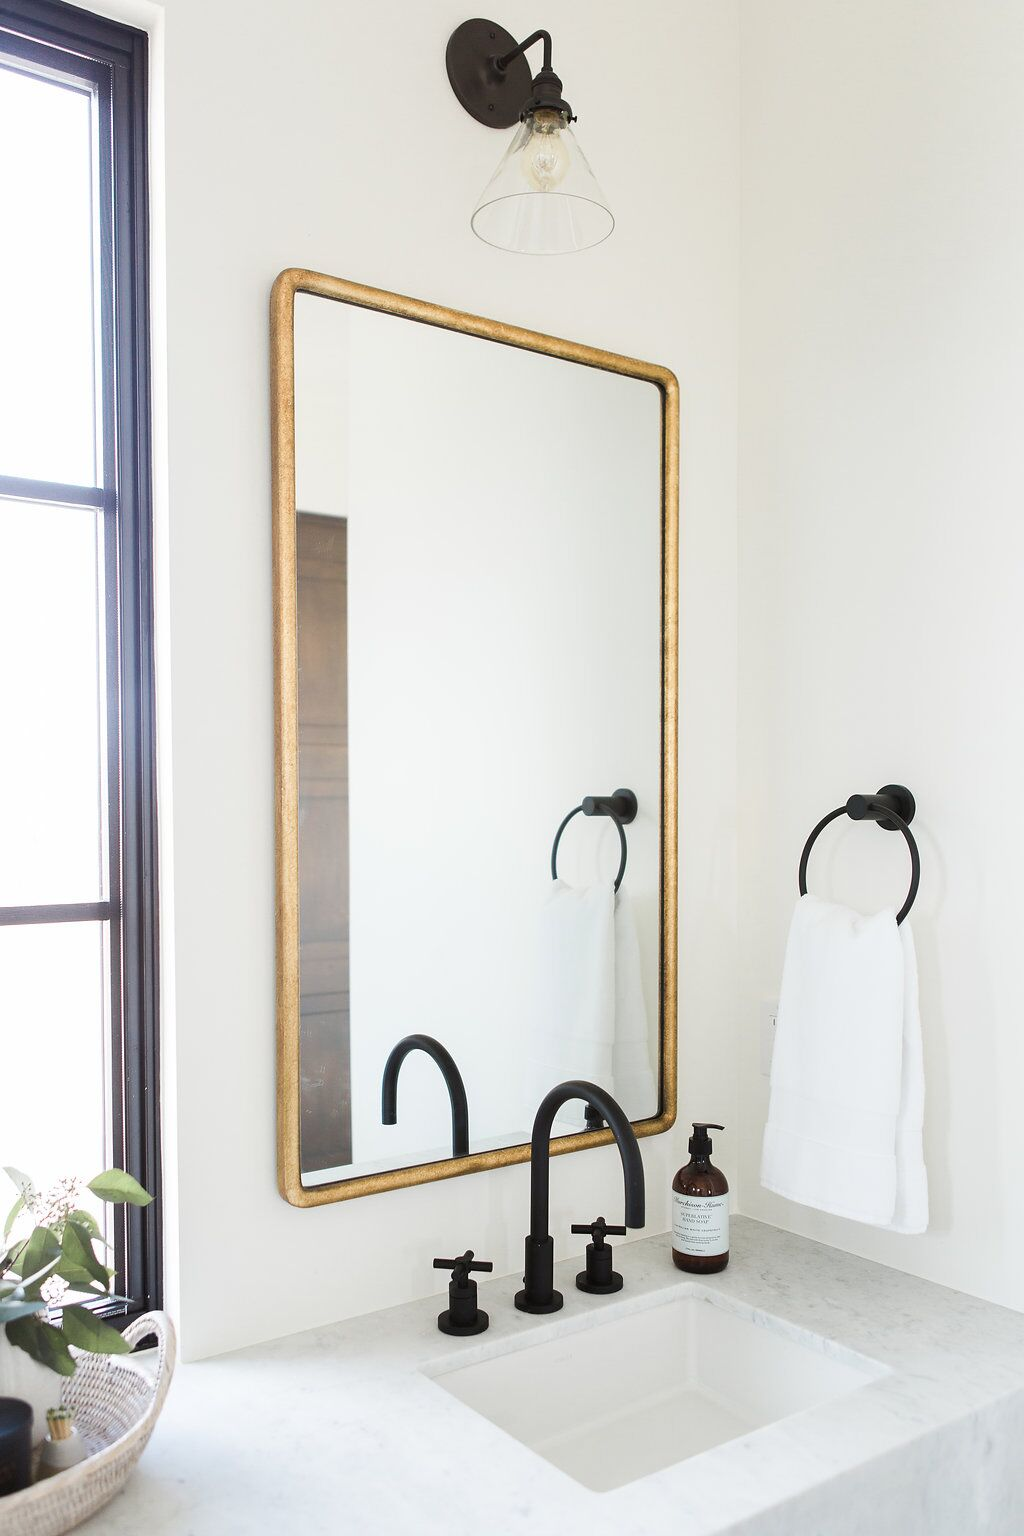 Gold mirror behind faucet in master bathroom